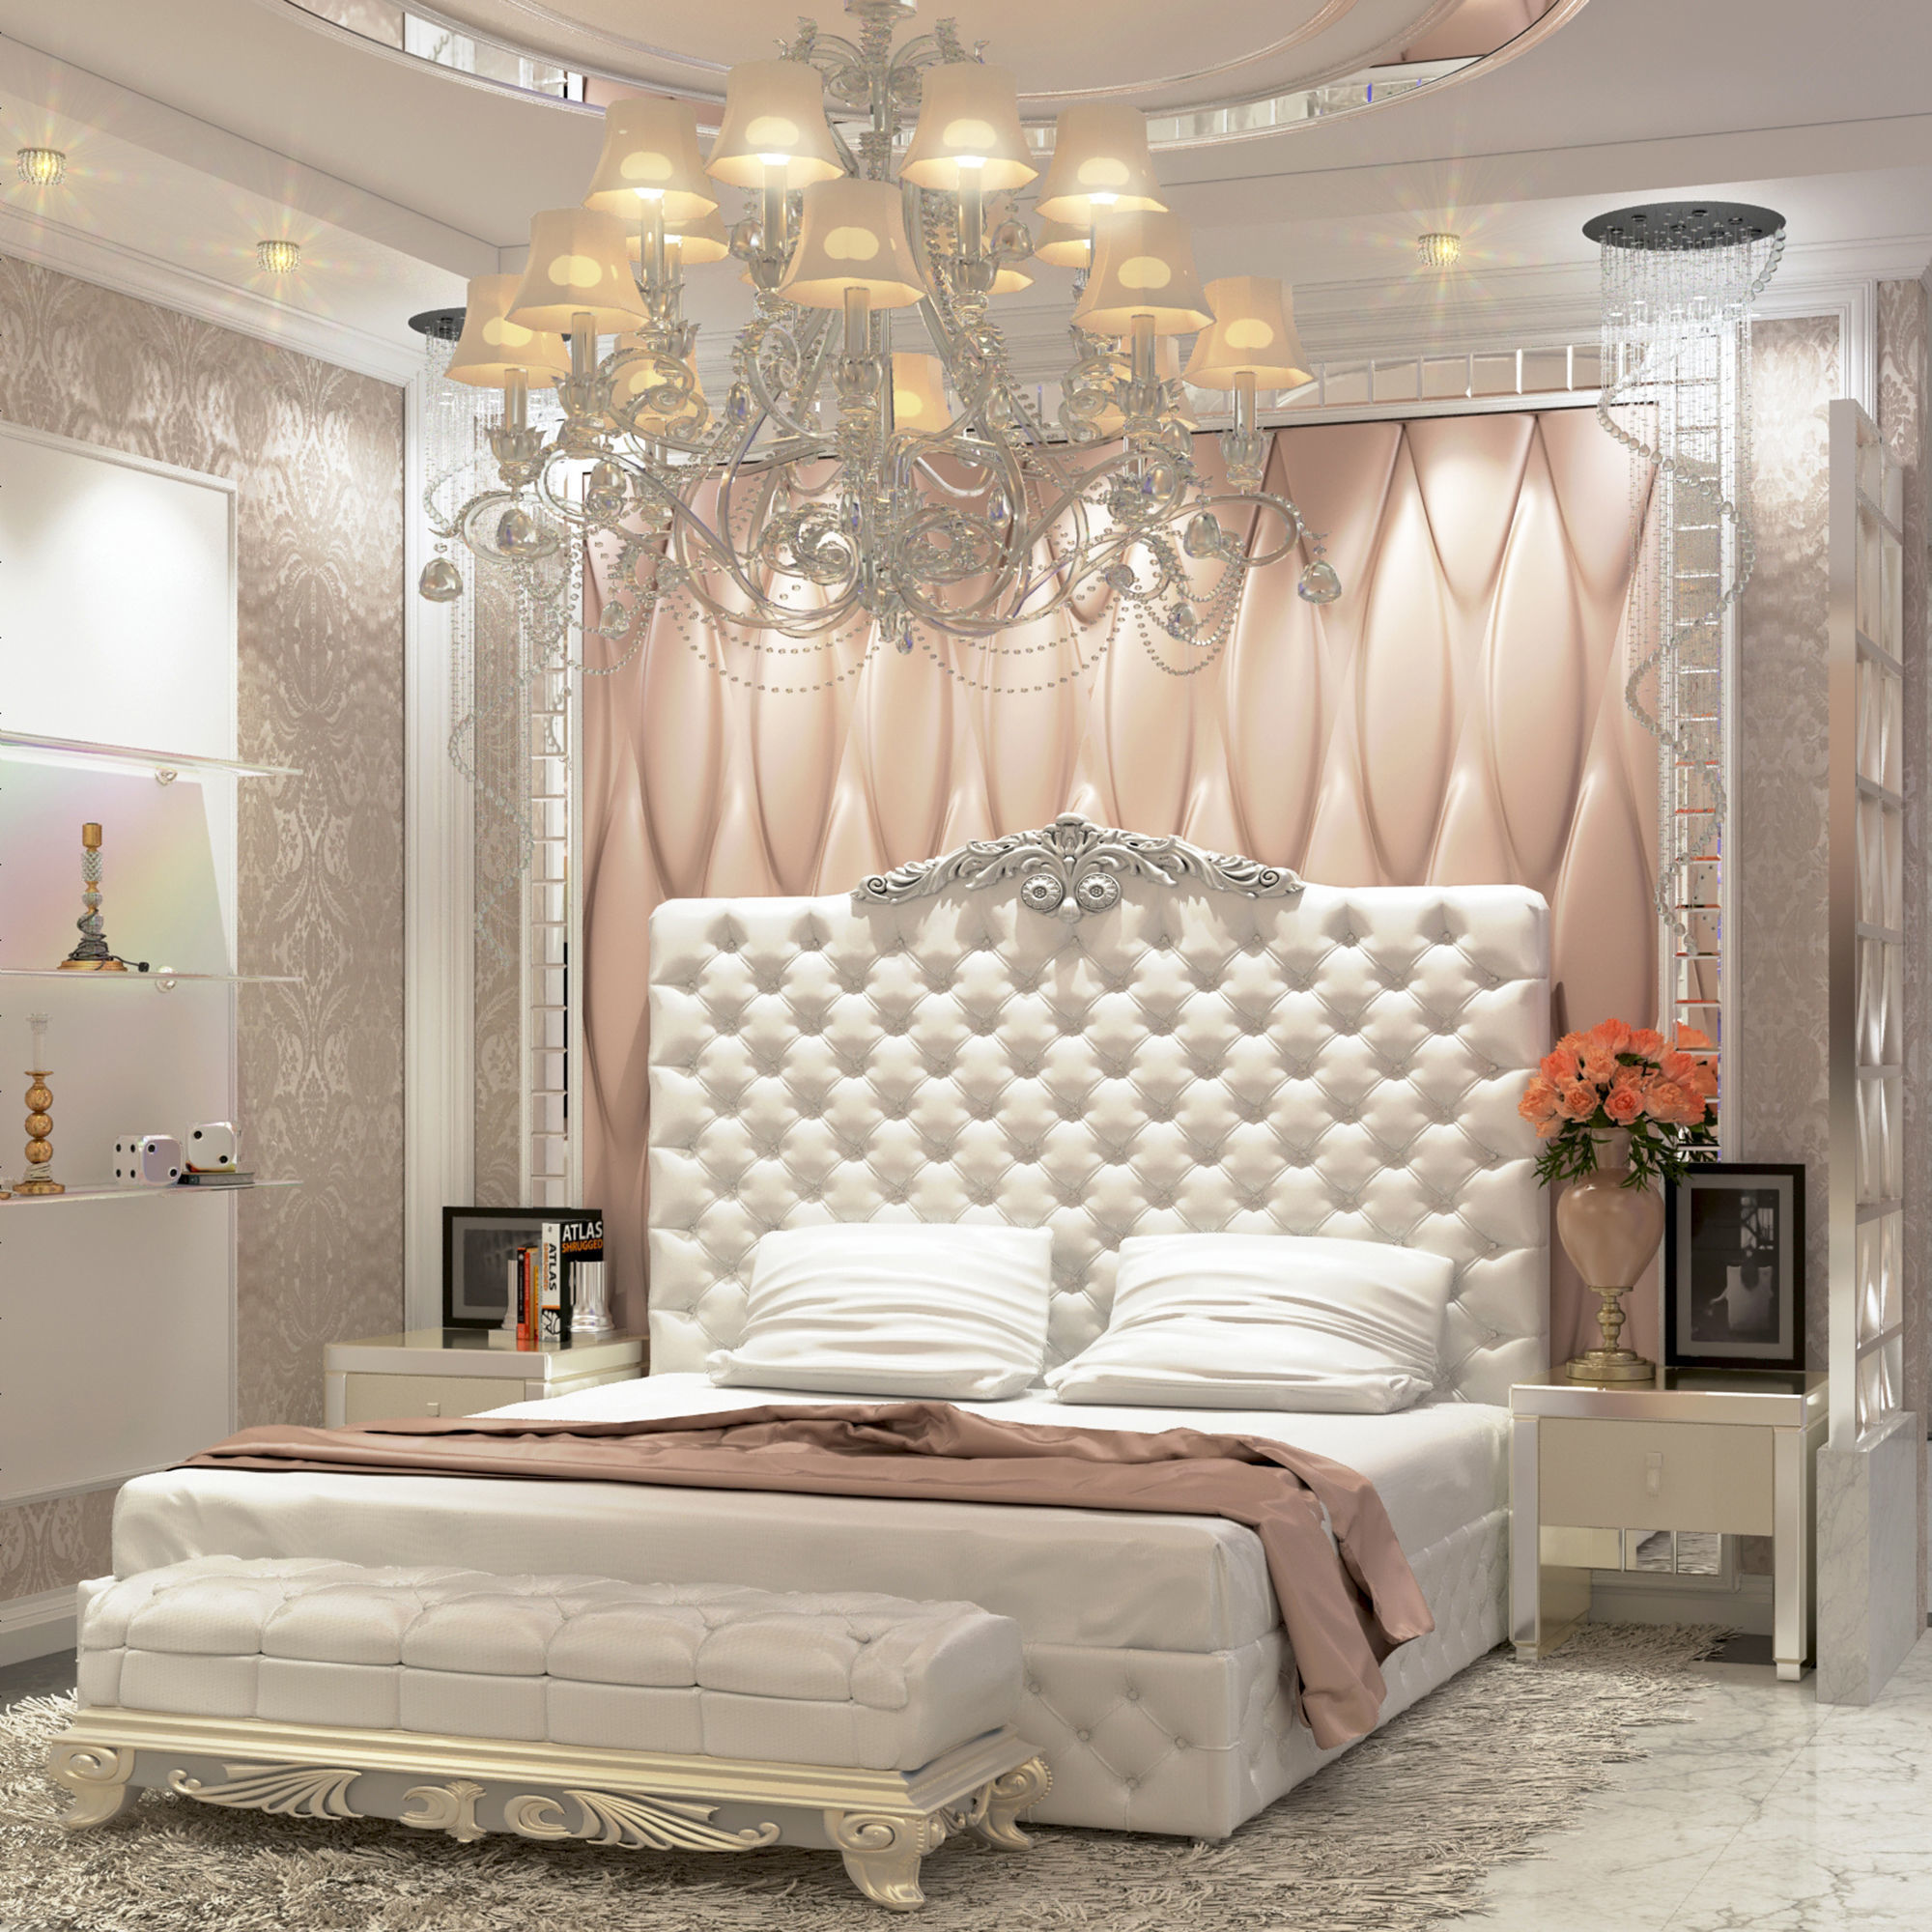 Modern Luxury bedroom and dressing room 3D model on Model Bedroom Ideas  id=54585